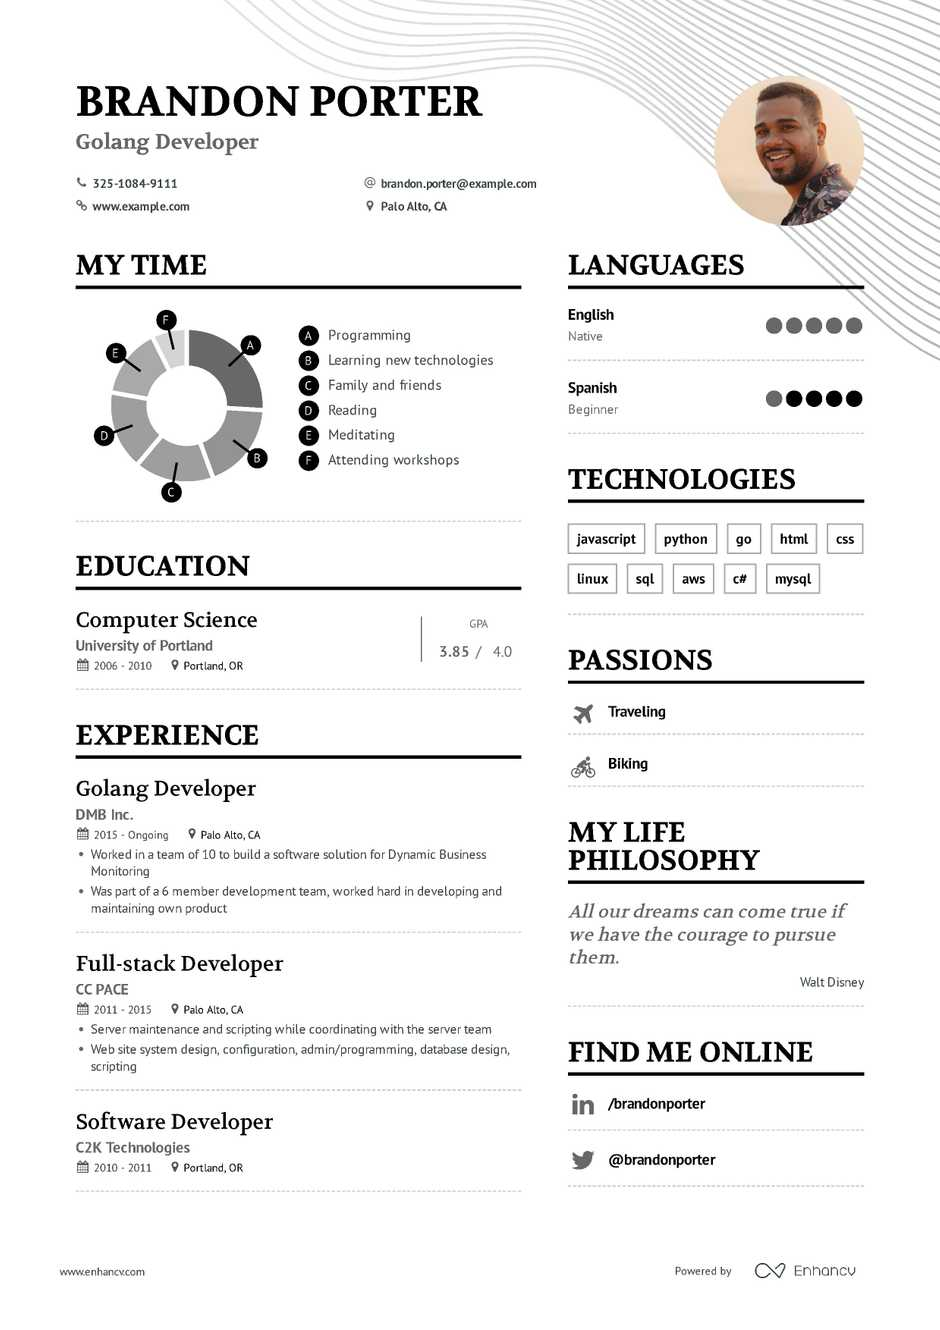 Data Engineer Resume Samples | Do's and Don'ts for 2019